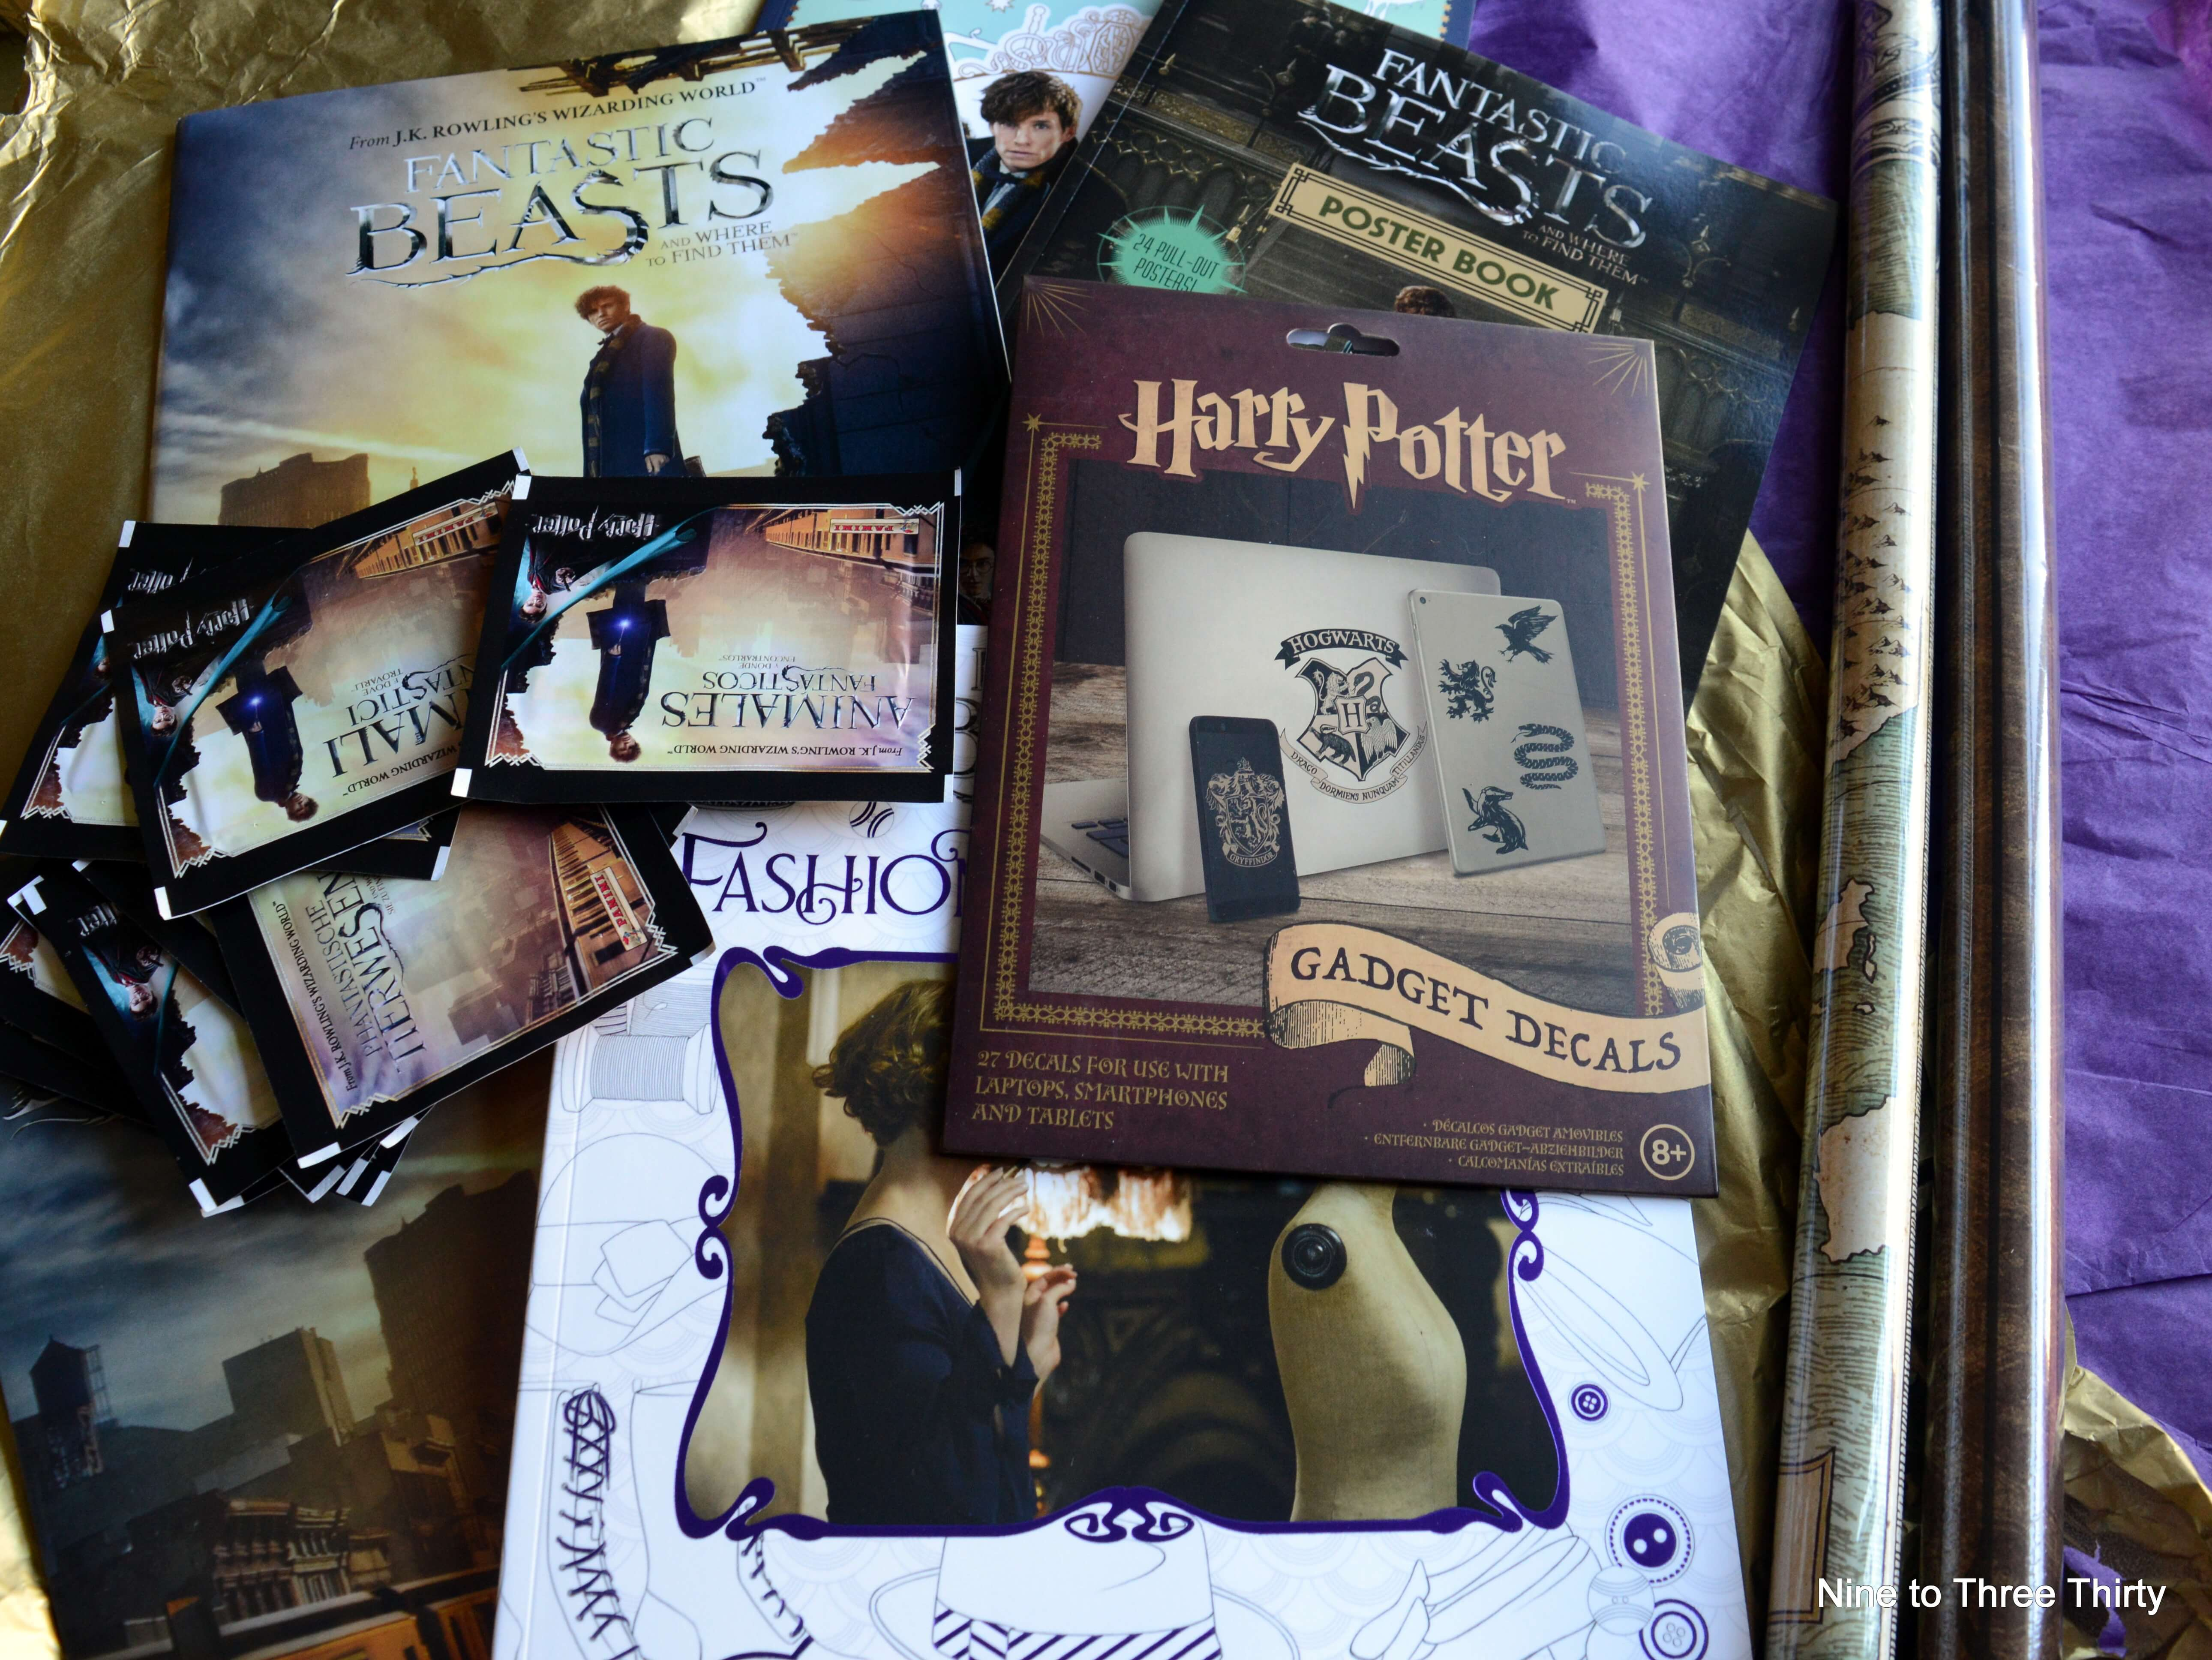 Fantastic Beasts and Where to Find them merchandise